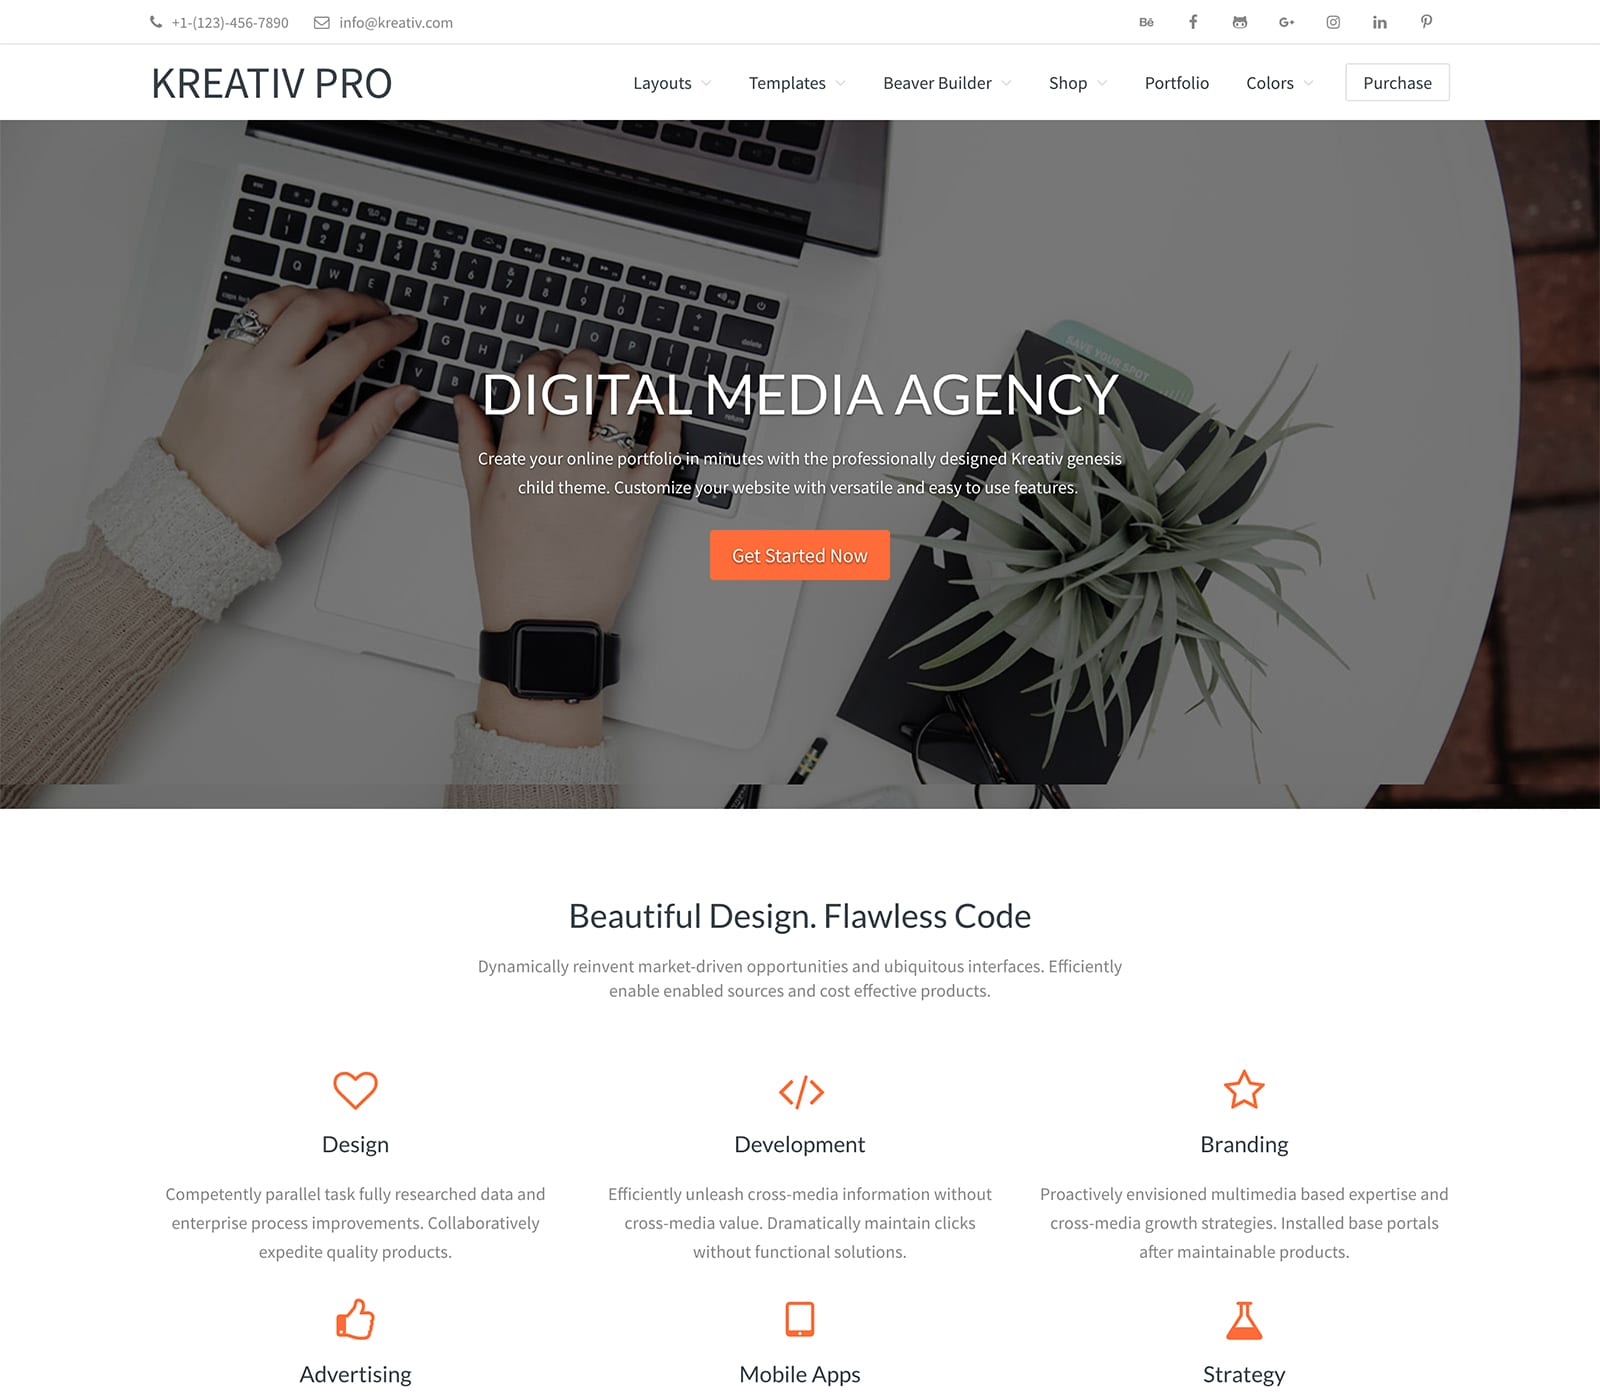 Kreativ Pro is a great design for agencies to show off projects.  a multi-purpose theme designed for agencies to showcase projects in style. It's a versatile, clean style that is easy to use.